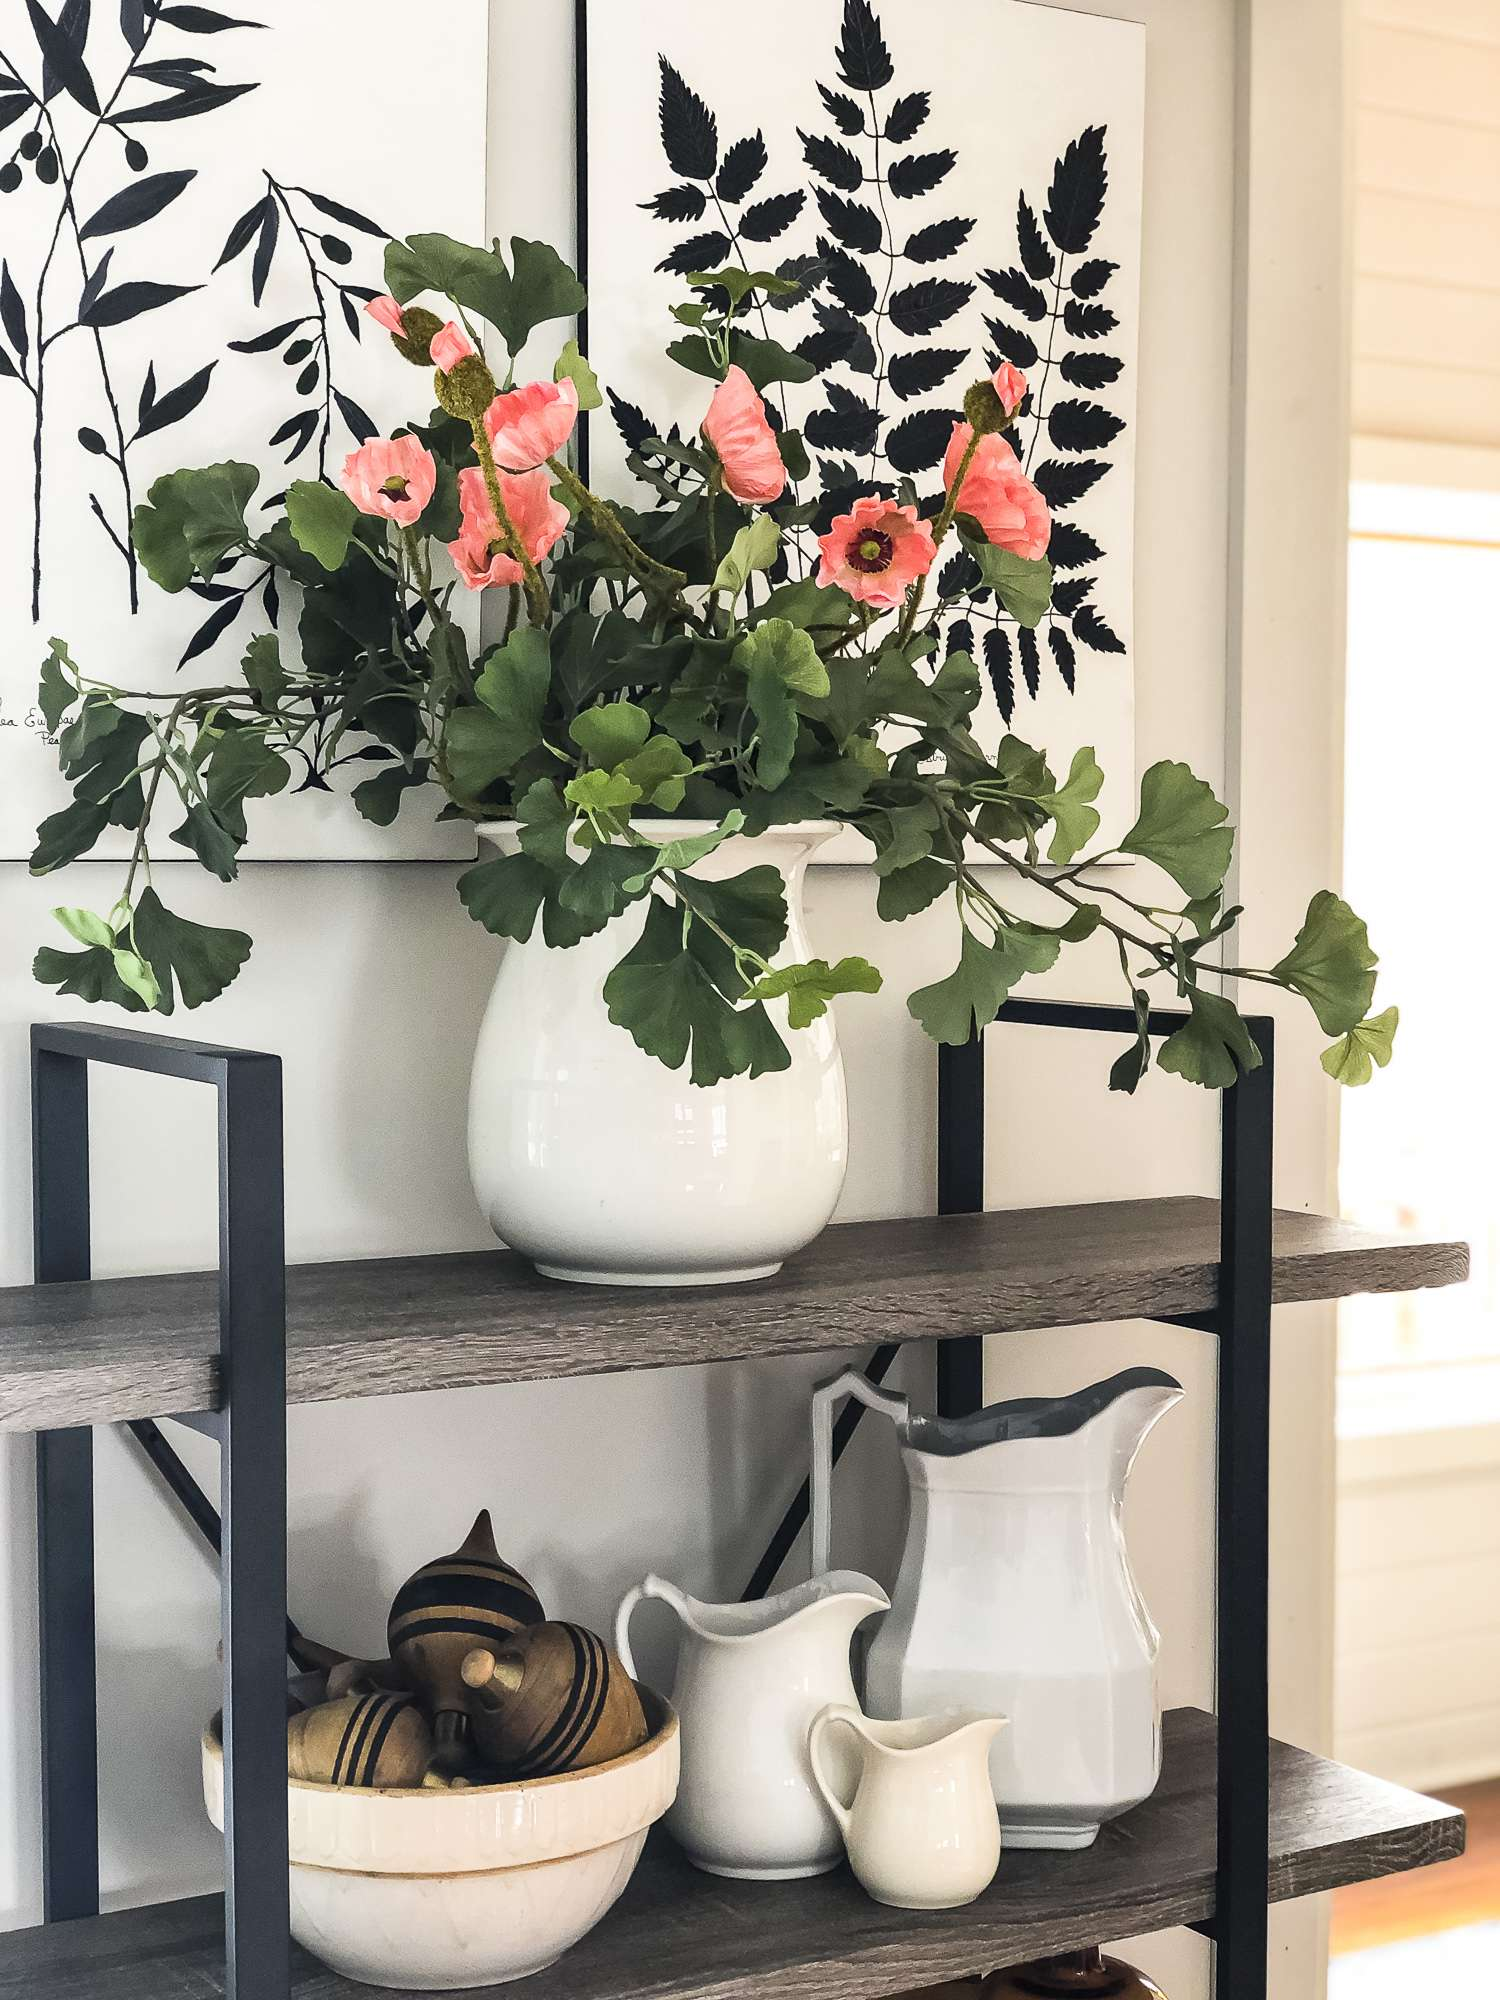 Do you wish to arrange faux flowers without having to stick to the traditional vase arrangement? Read 5 non-traditional ways to arrange faux flowers! #fromhousetohaven #fauxflowers #artificialflowers